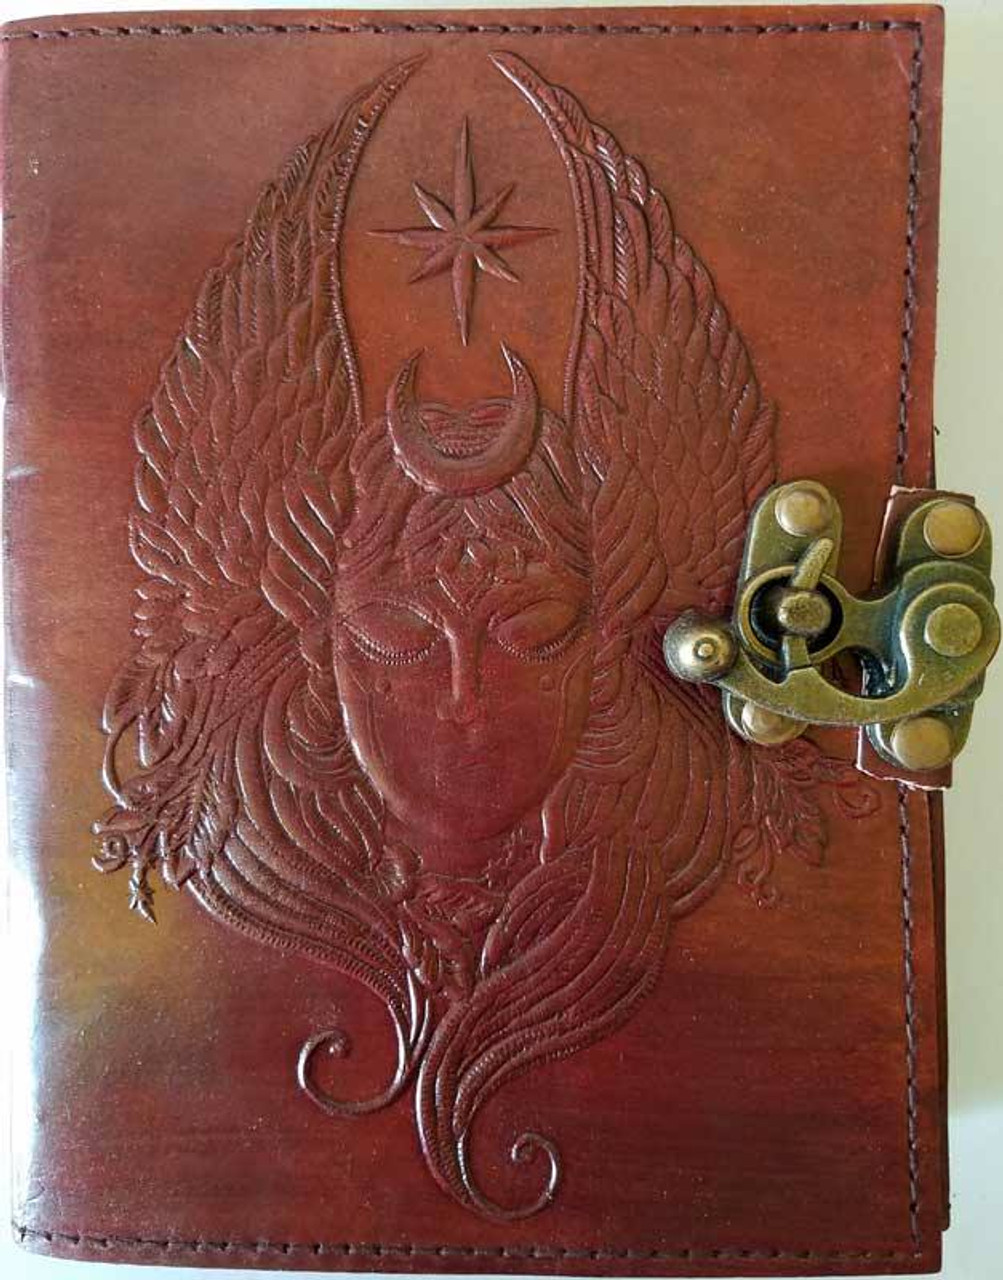 Moon Goddess Blank Leather Journal w/ Latch